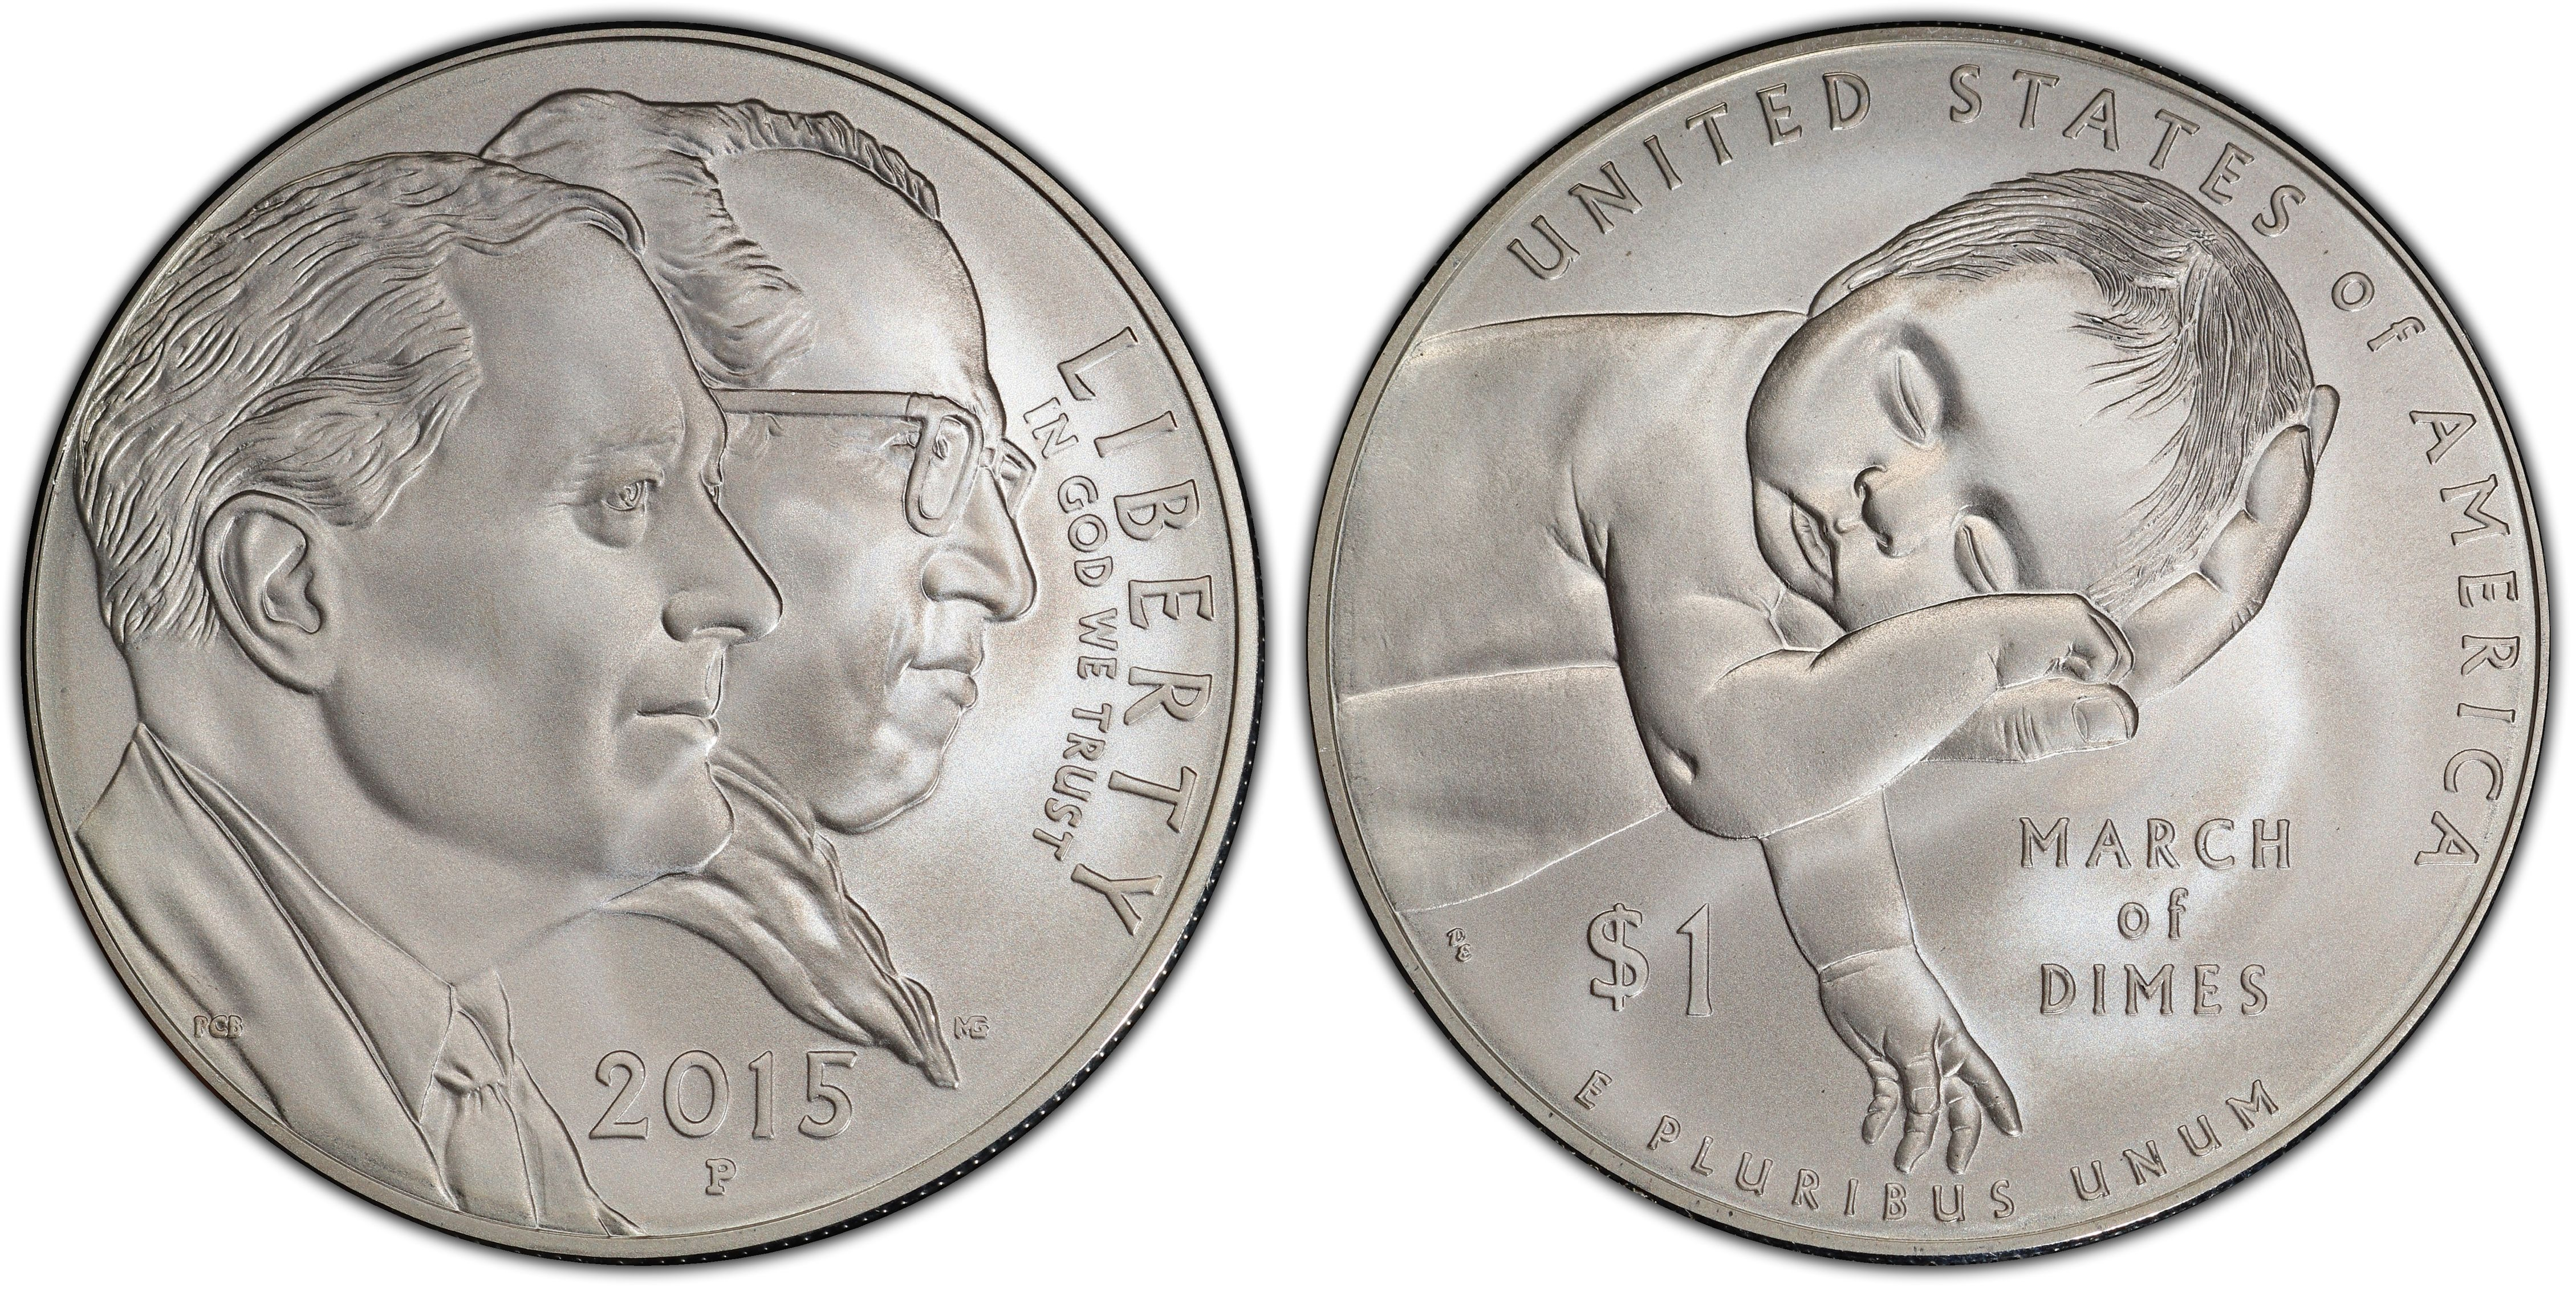 2015-P US March of Dimes Commemorative BU Silver Dollar PCGS MS70 First Strike